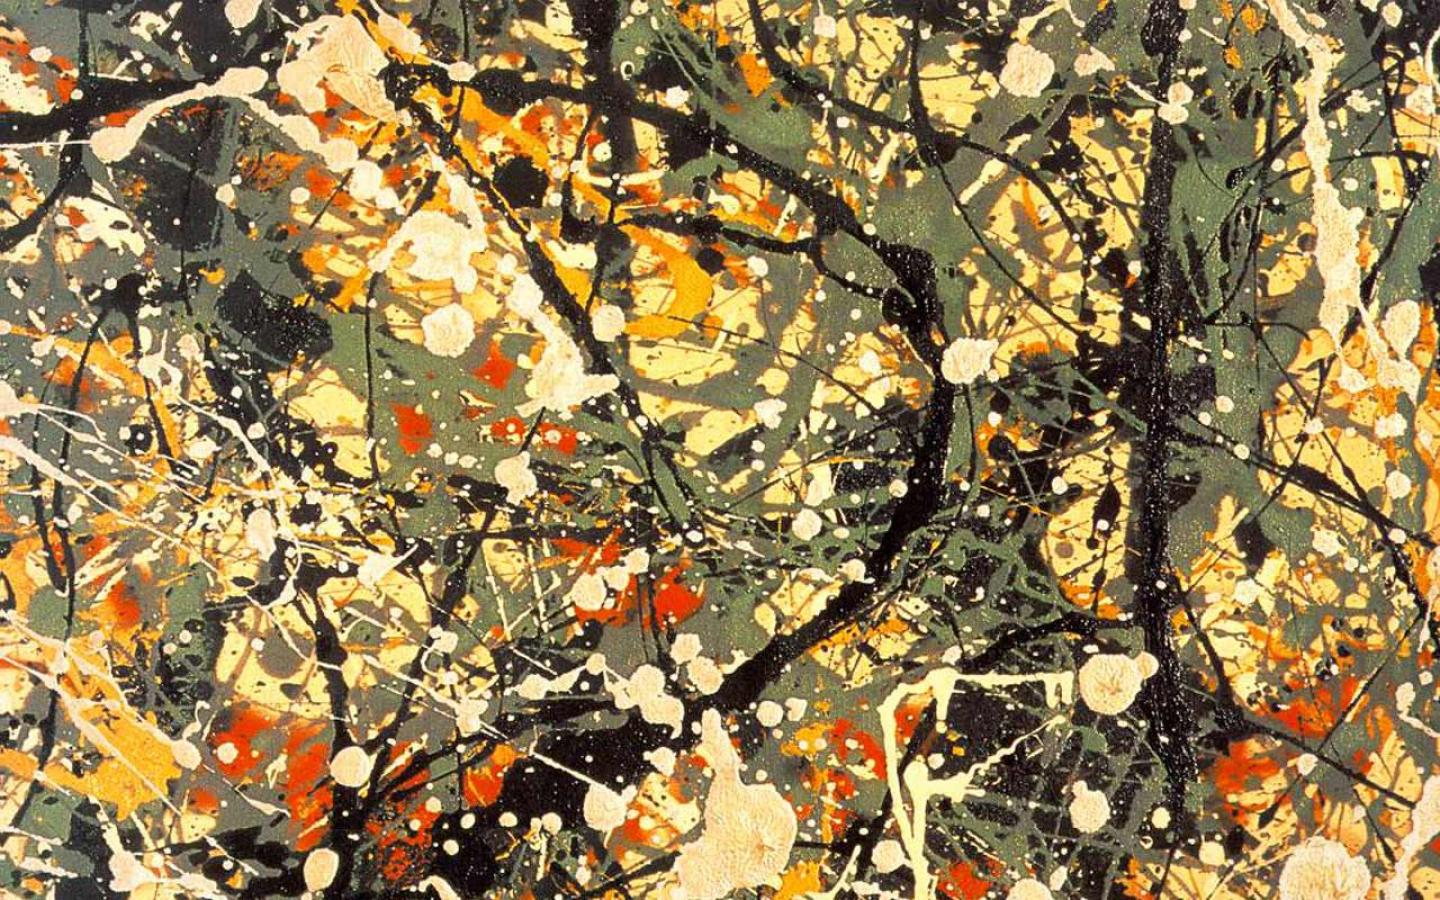 Jackson Pollock - Number 8 (1949) Wallpaper #3 1440 x 900